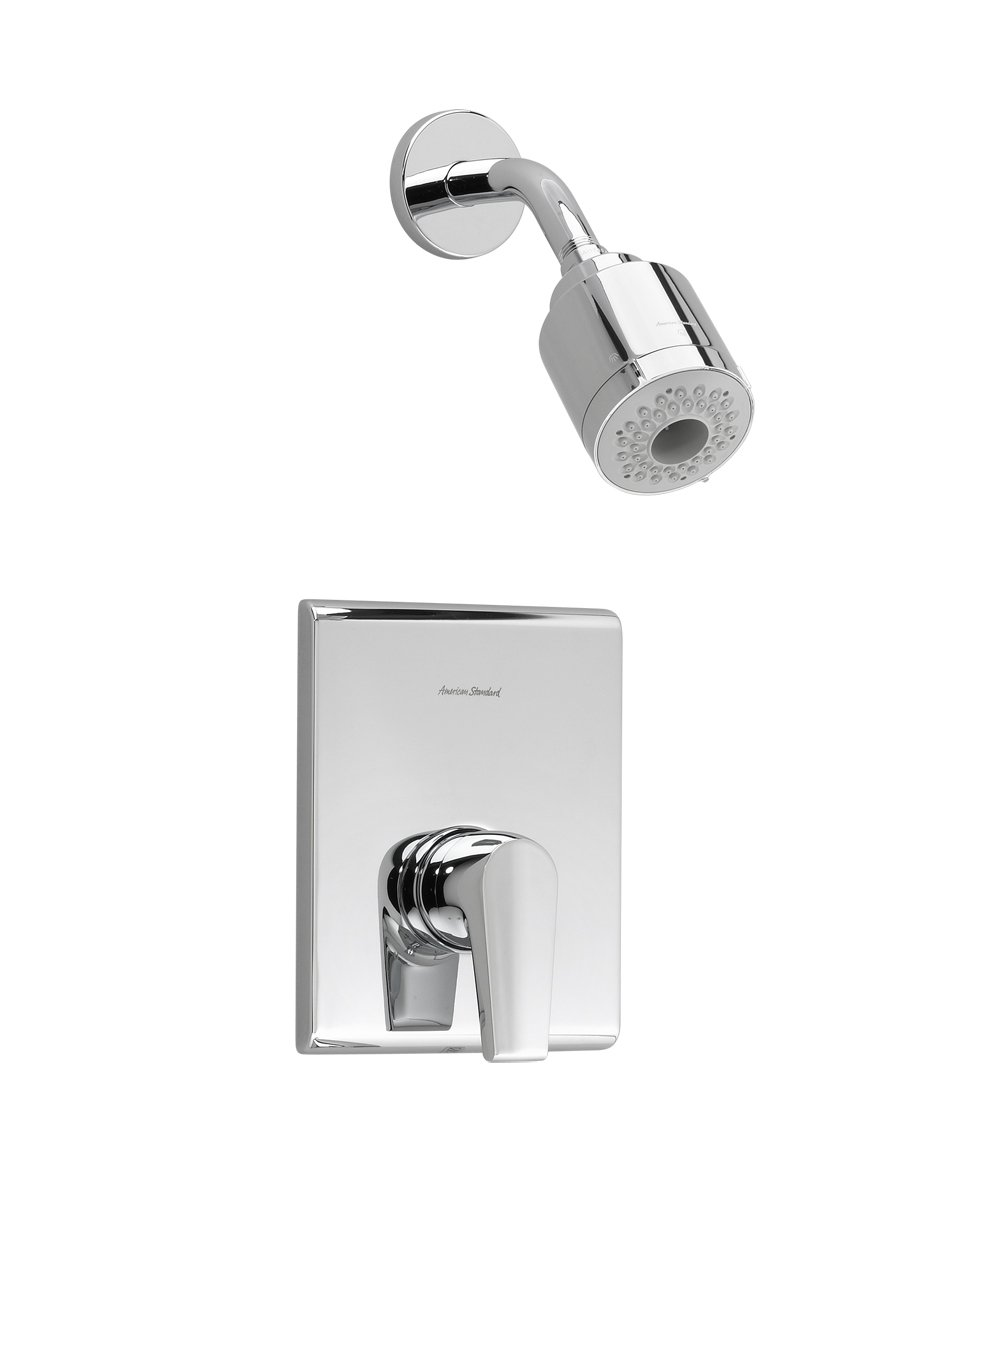 hot sale 2017 American Standard T590.507.002 Studio Shower Only Trim Kit with 3-Function Flowise Showerhead, Polished Chrome